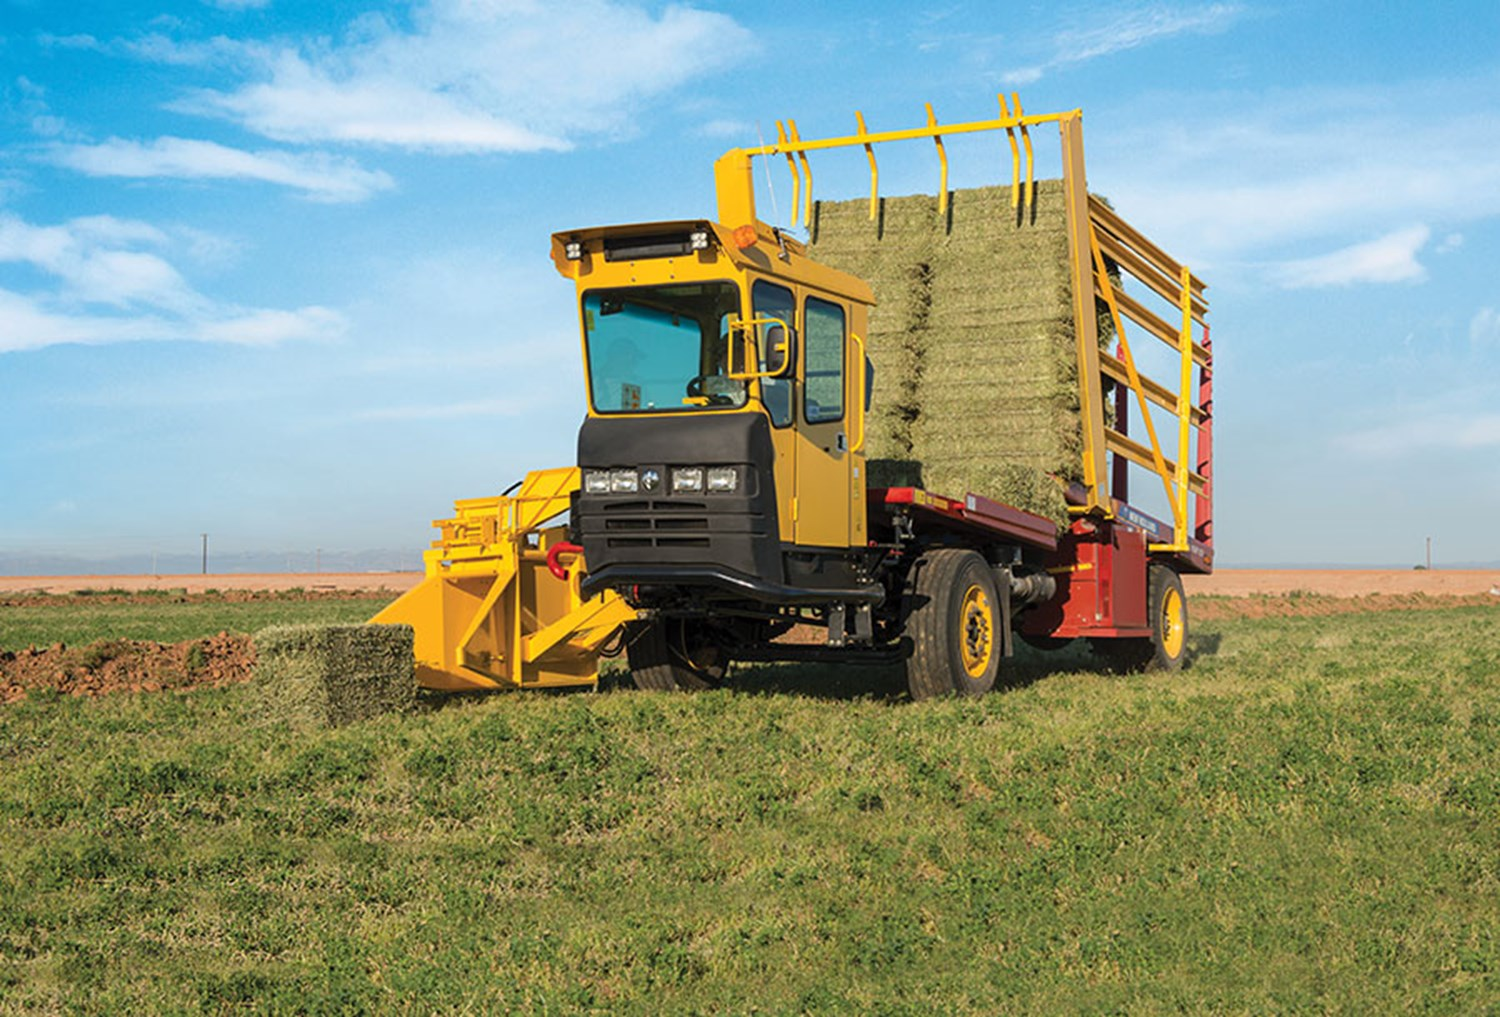 NEW HOLLAND SP BALE WAGON SERIES